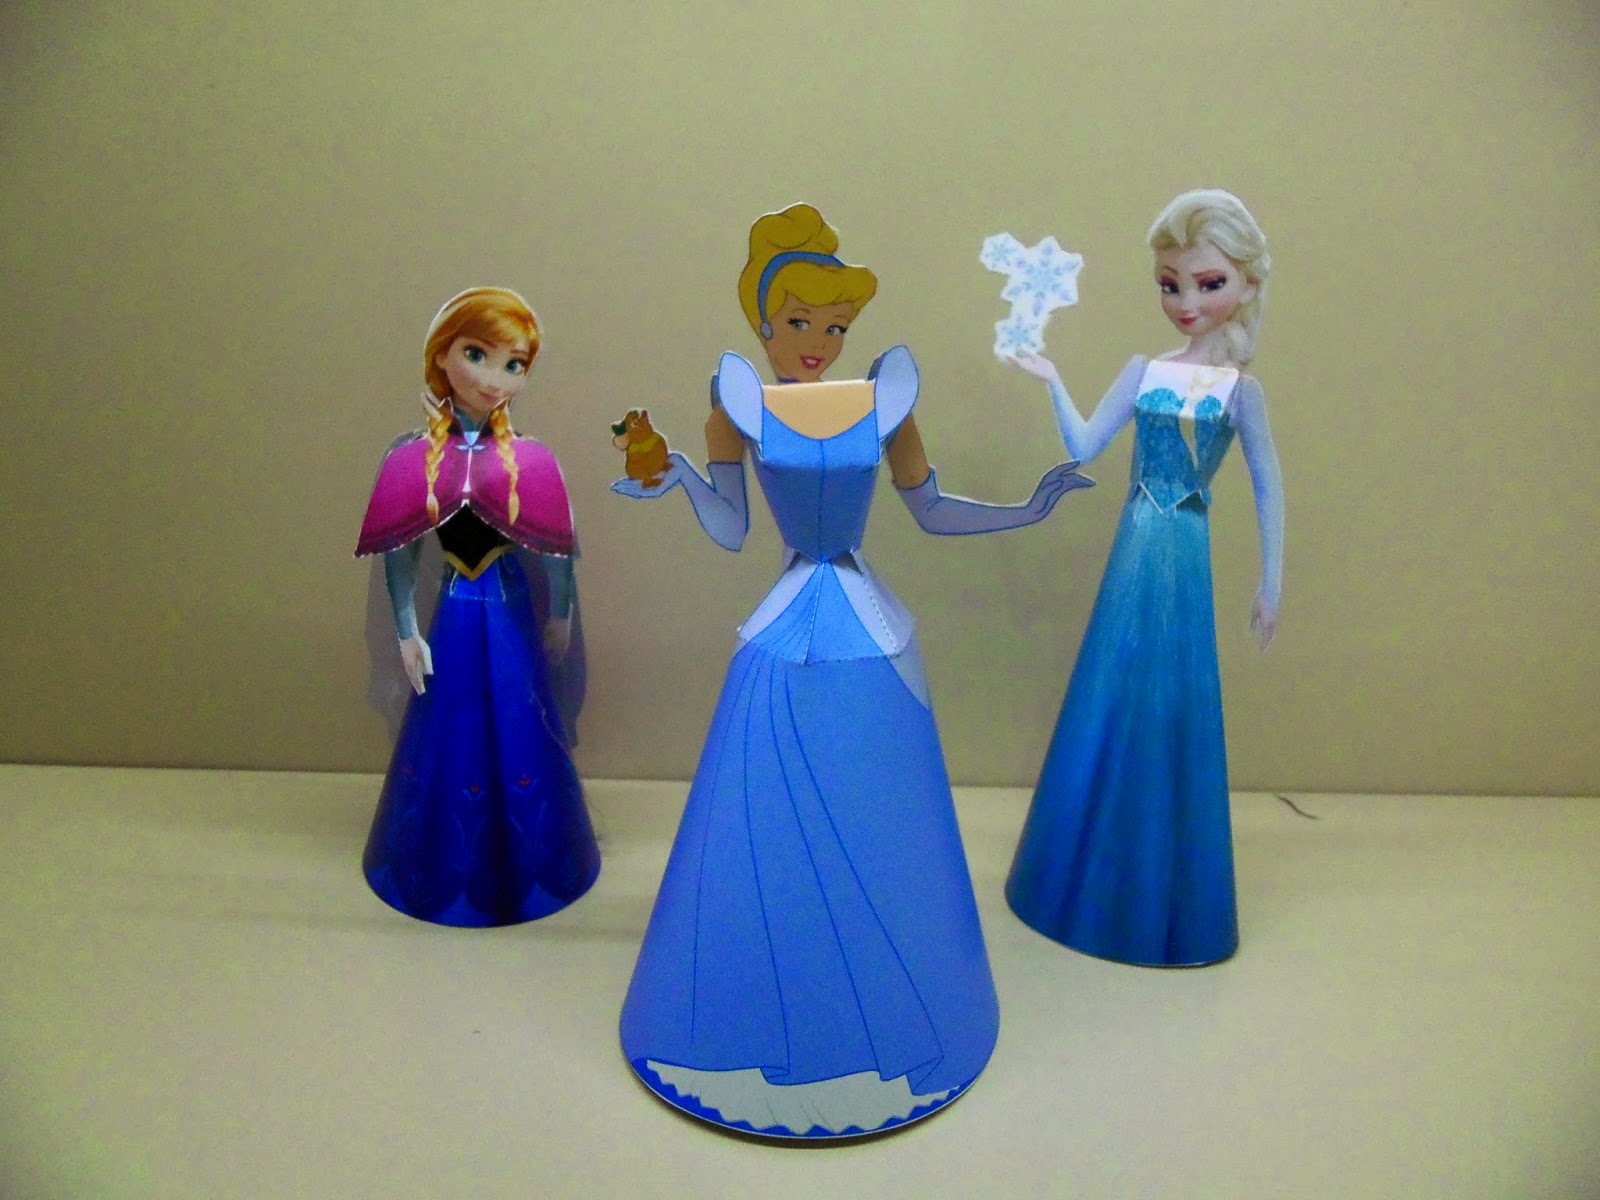 Disneys Frozen Elsa Papercraft 3D How To Make A Full Movie